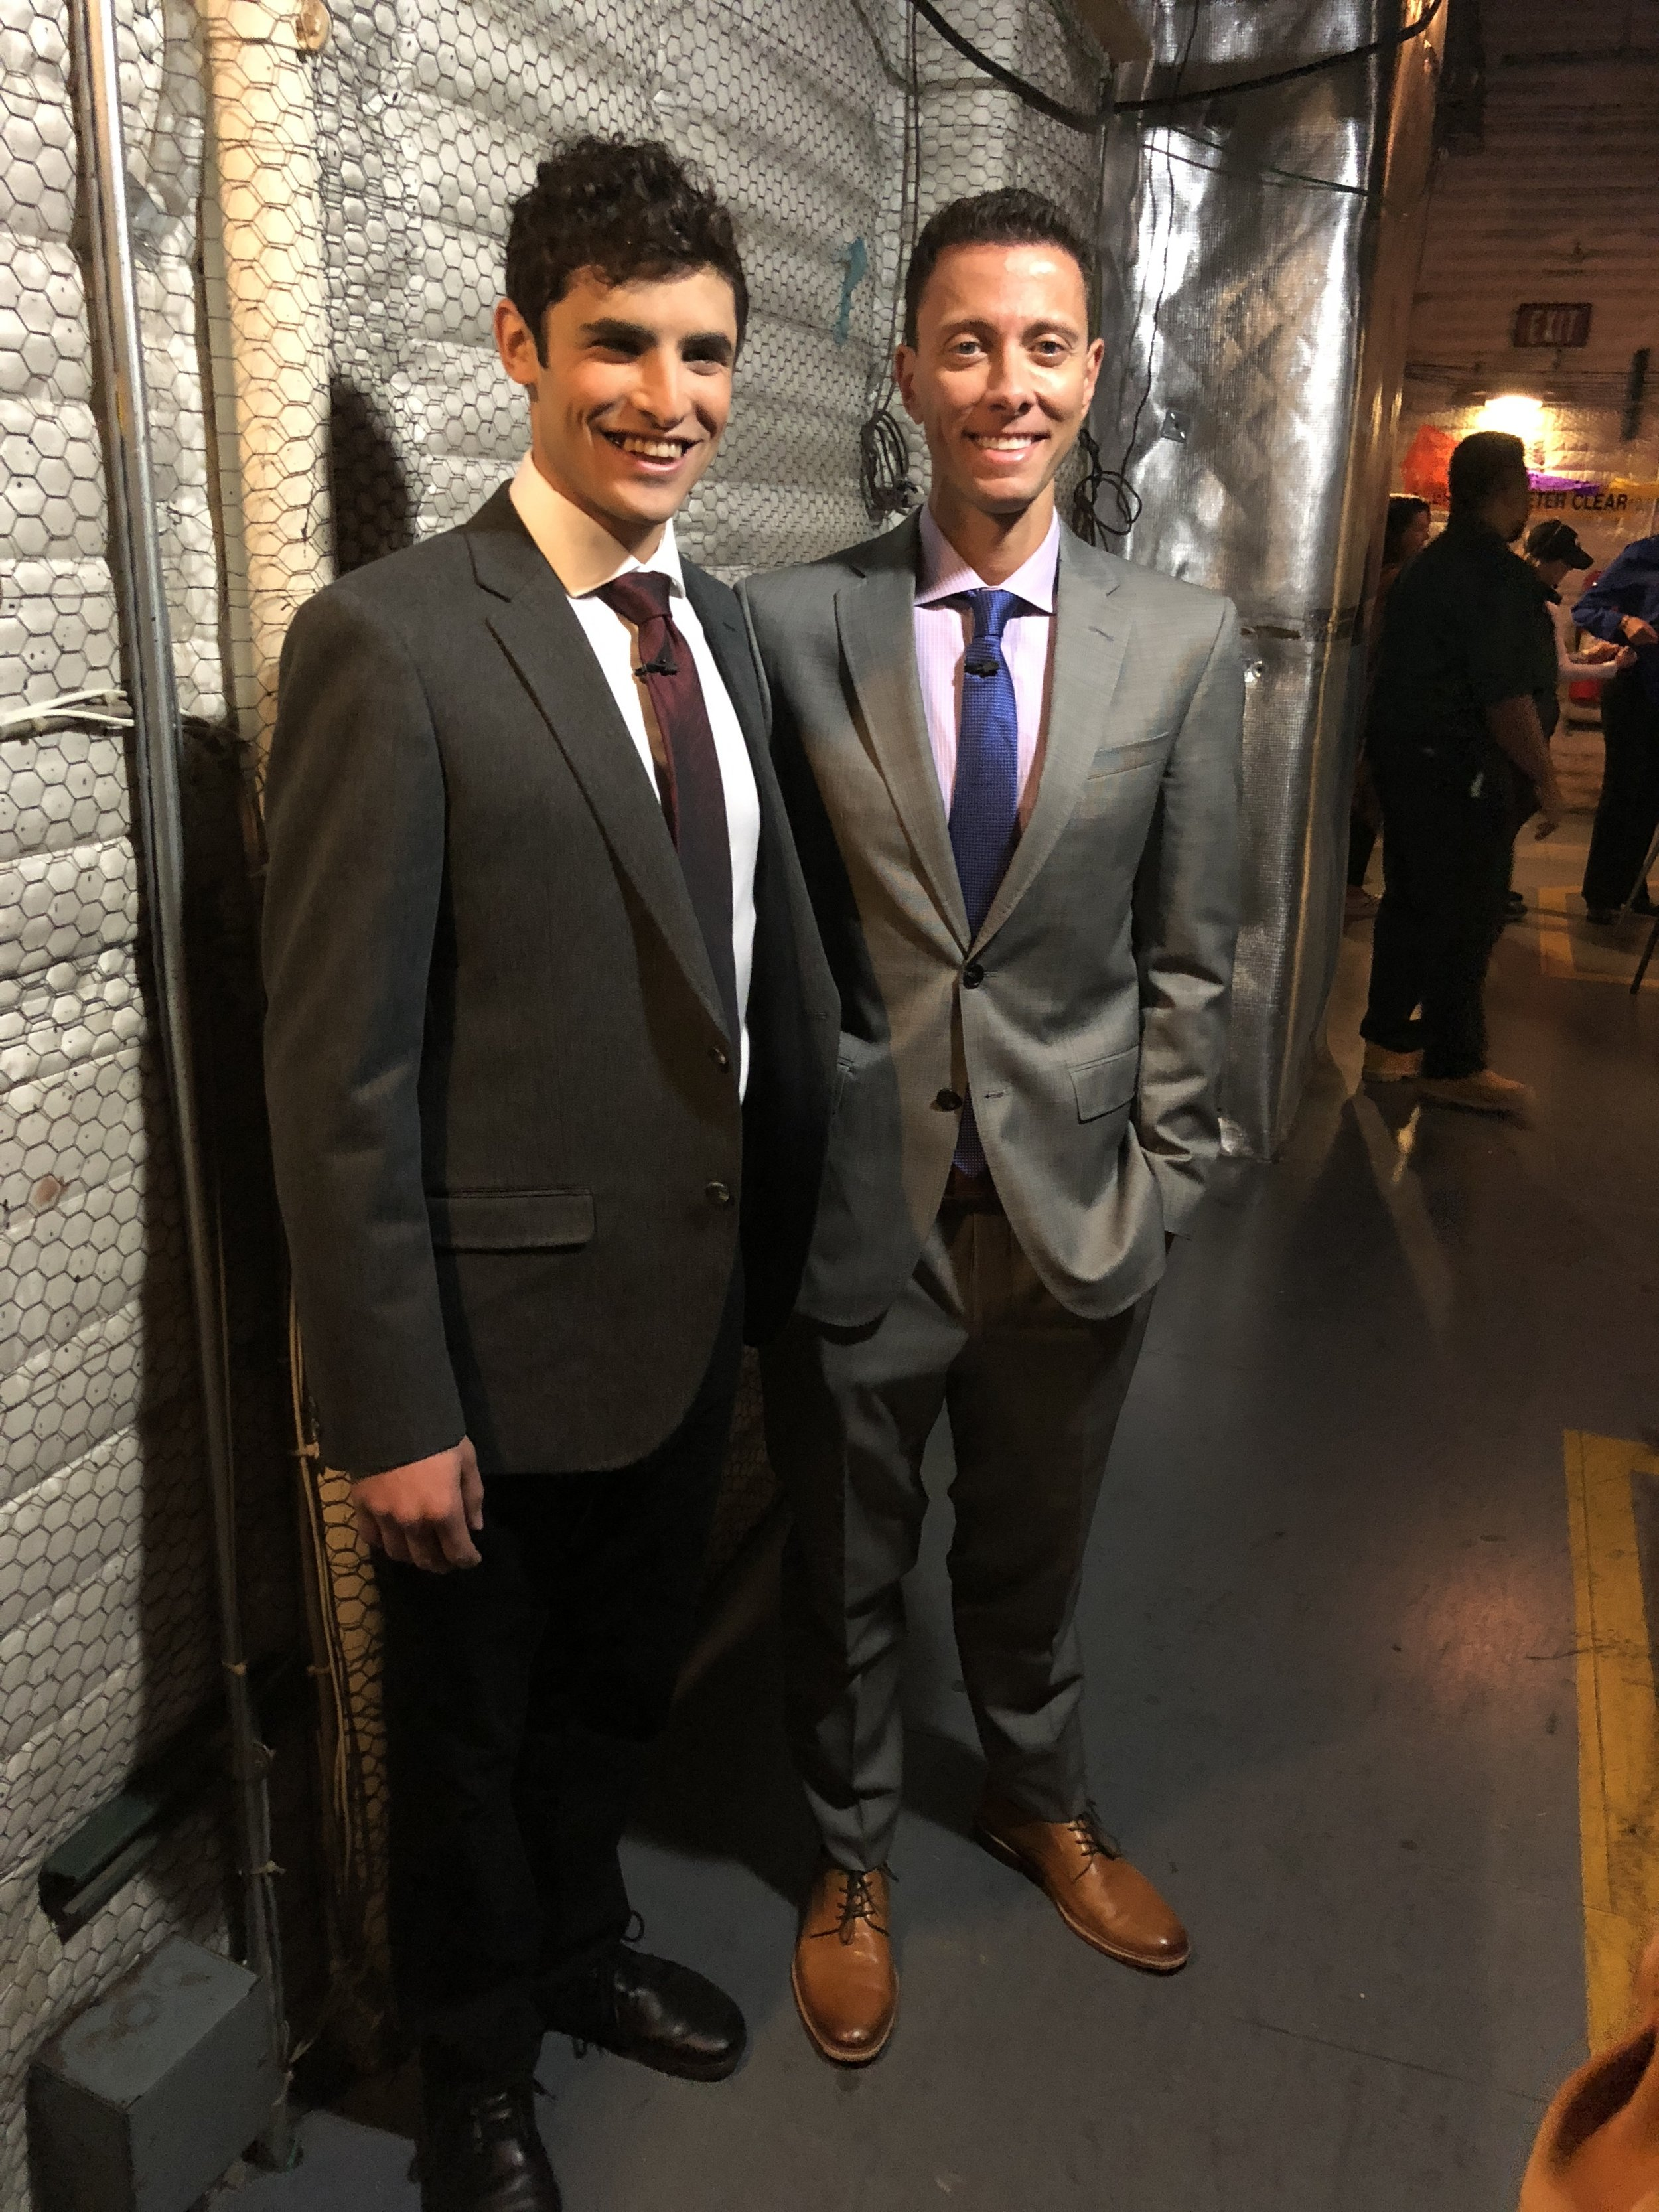 Dr. Peled and I backstage for The Doctors. Still swollen.